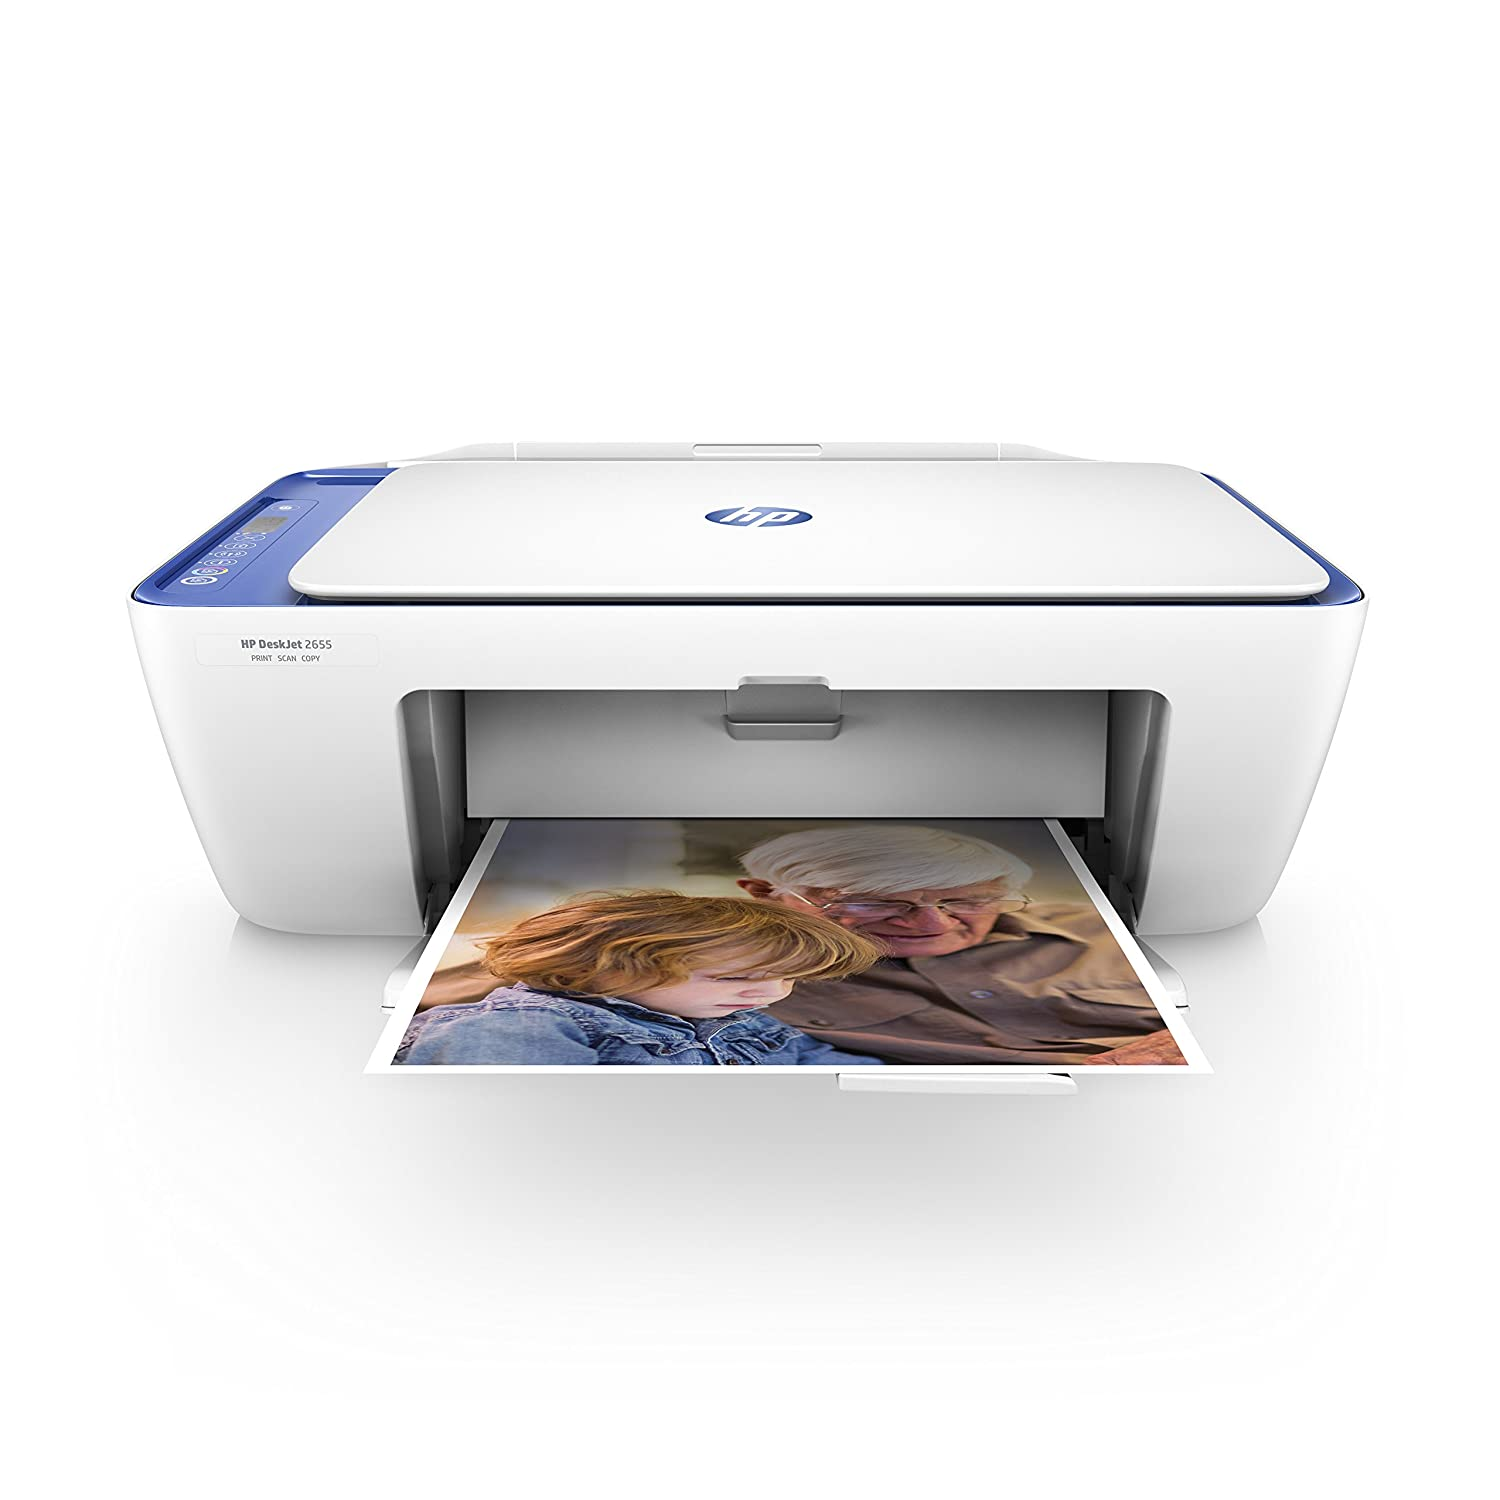 HP DeskJet 2655 All-in-One Compact Printer, Instant Ink ready - Noble Blue (V1N01A)